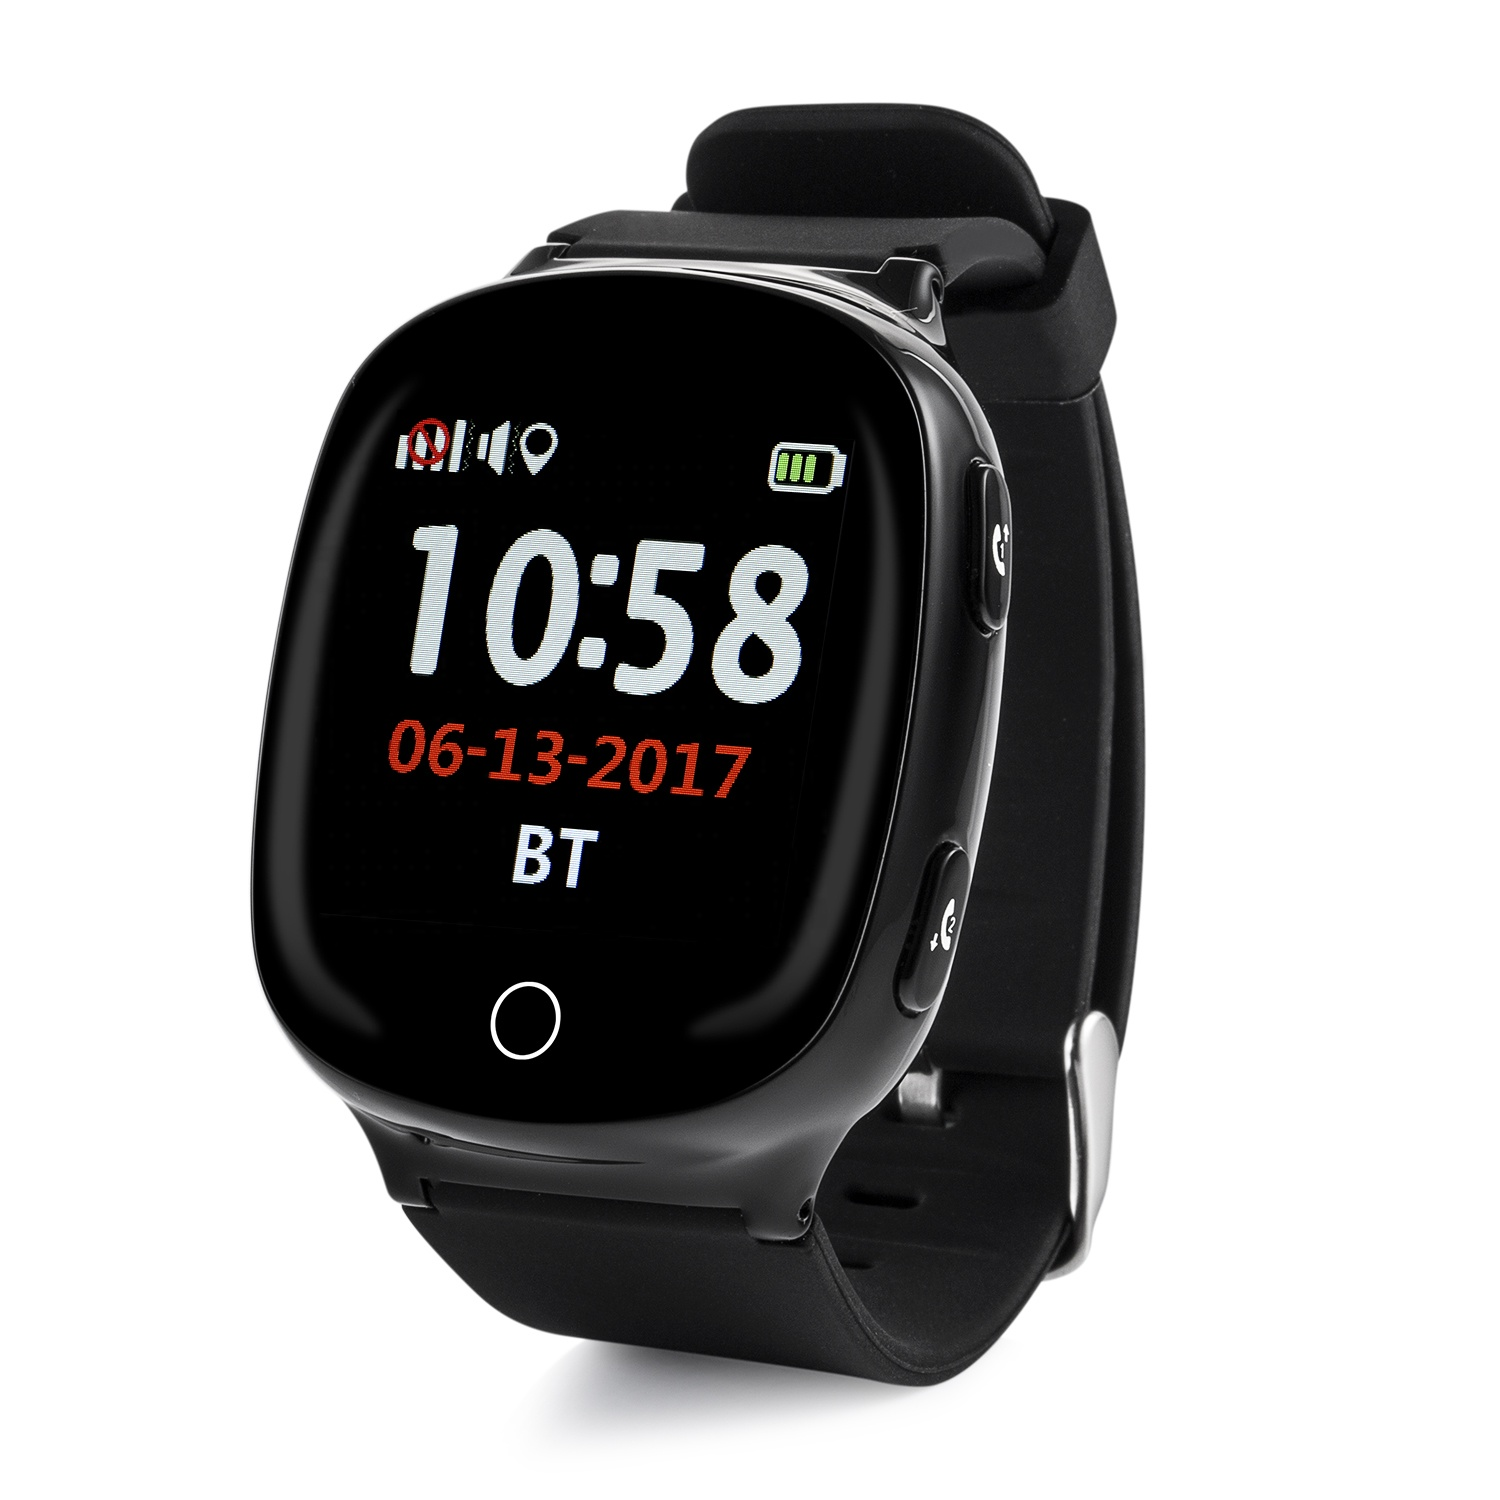 Wonlex Factory OEM <strong>D100</strong> Smart Tracking WIFI Locator Elderly GPS Watch <strong>Phone</strong>